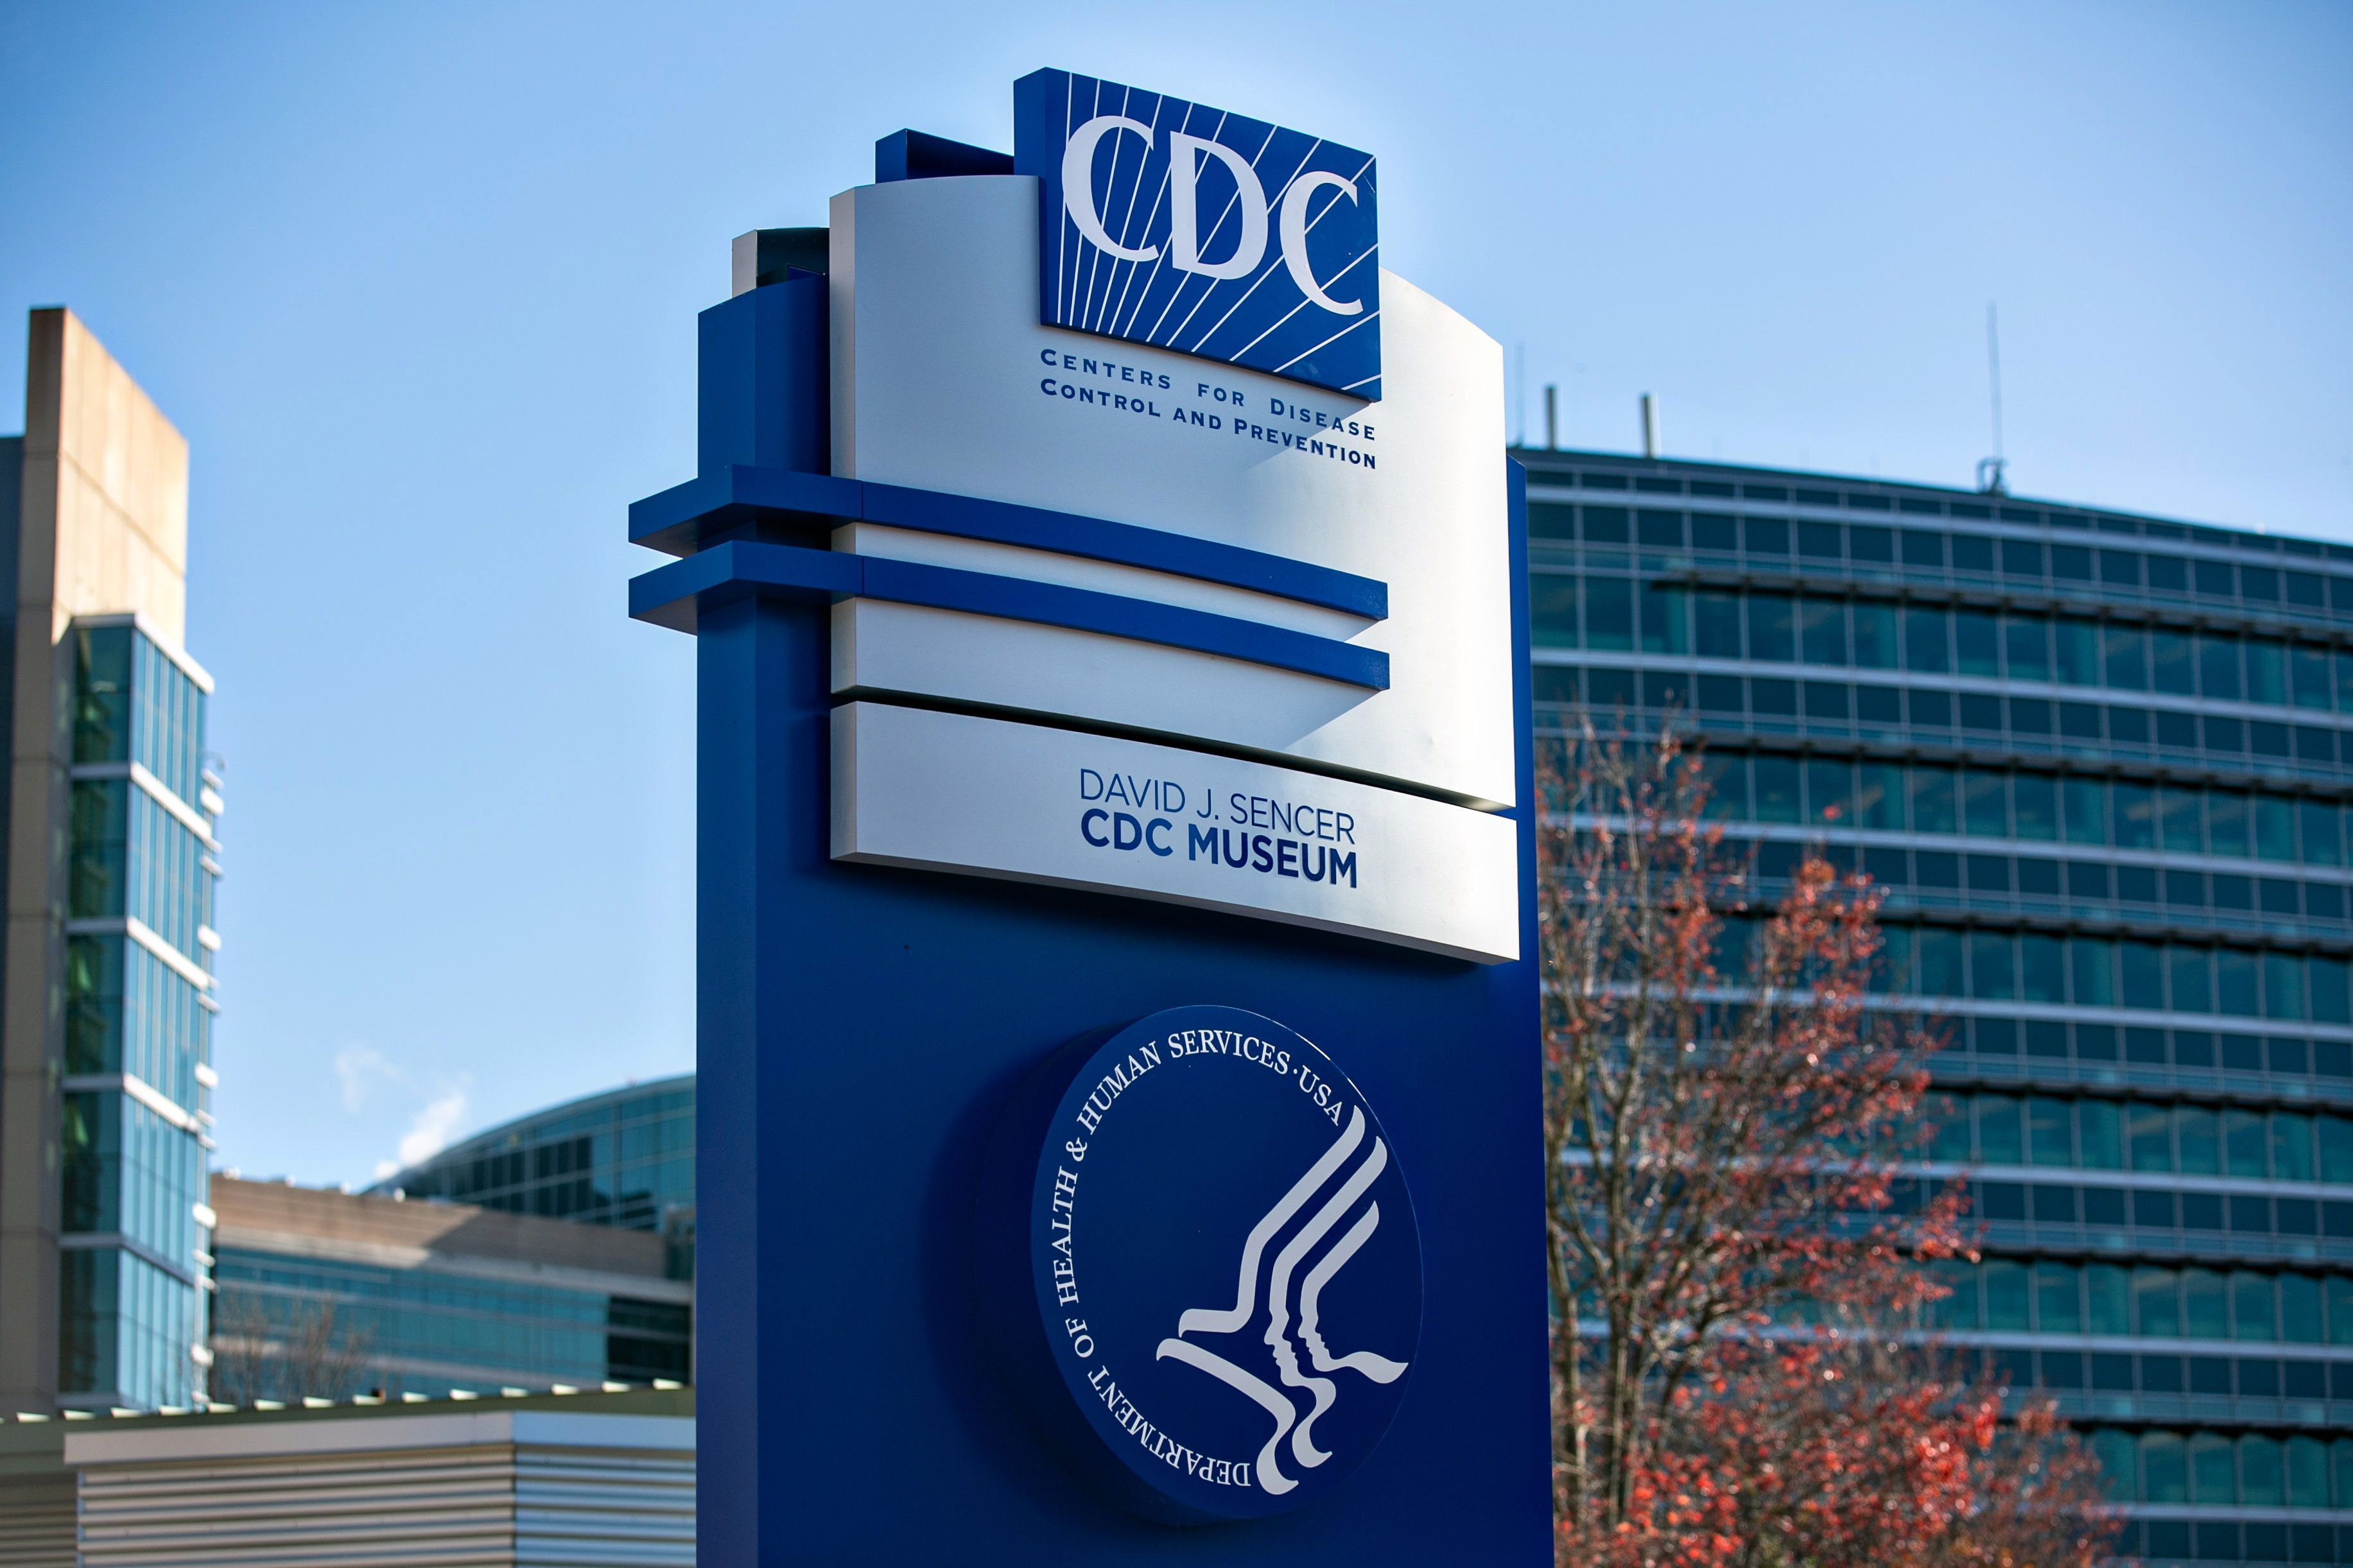 The Centers for Disease Control and Prevention is seen in Atlanta on December 10.